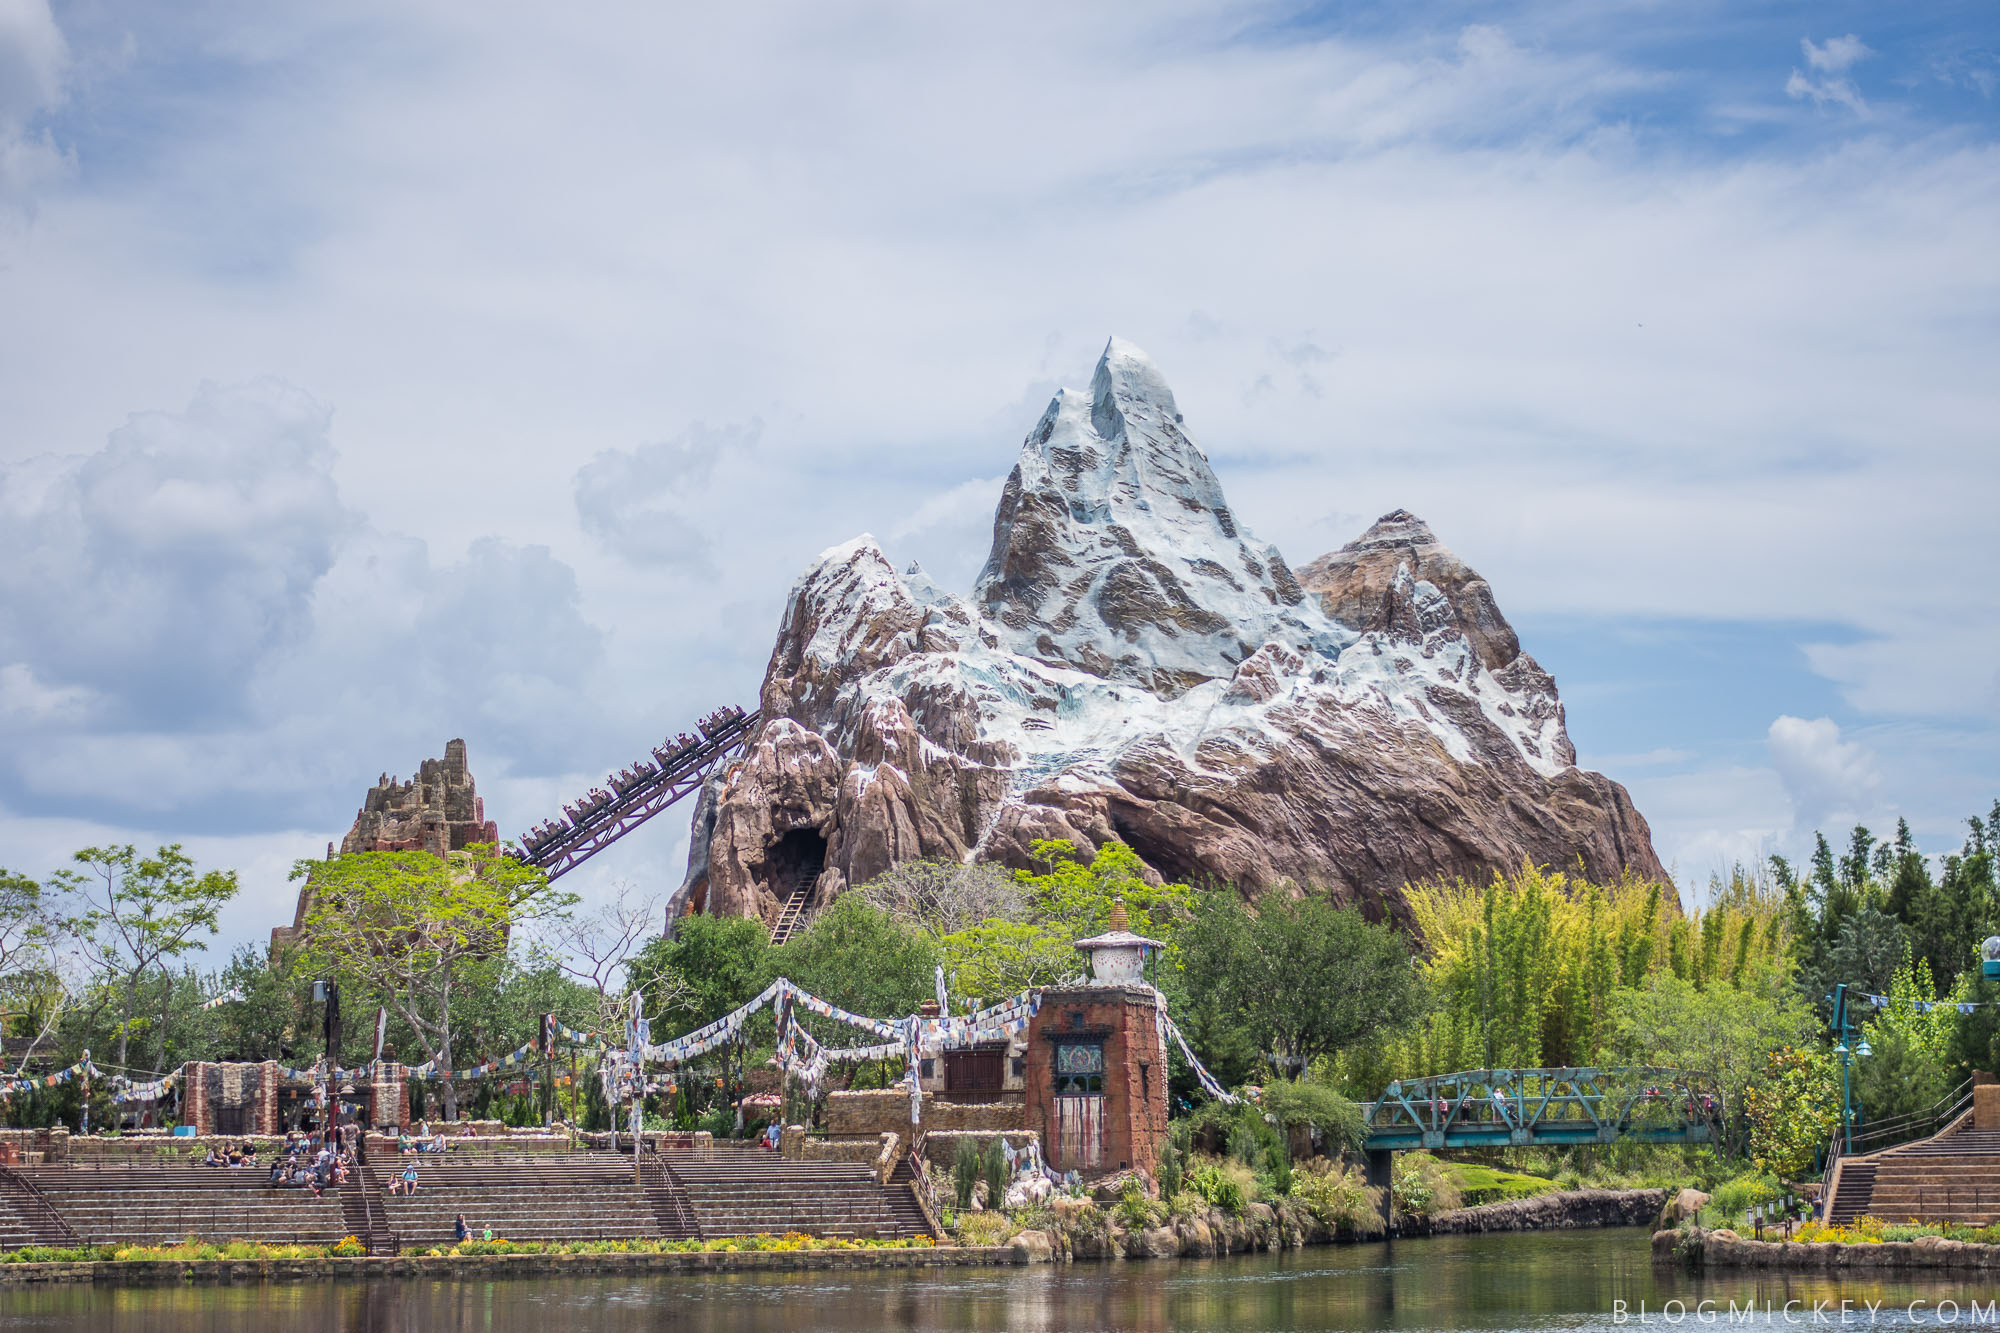 disney s expedition everest Find great deals on ebay for disney expedition everest shop with confidence.